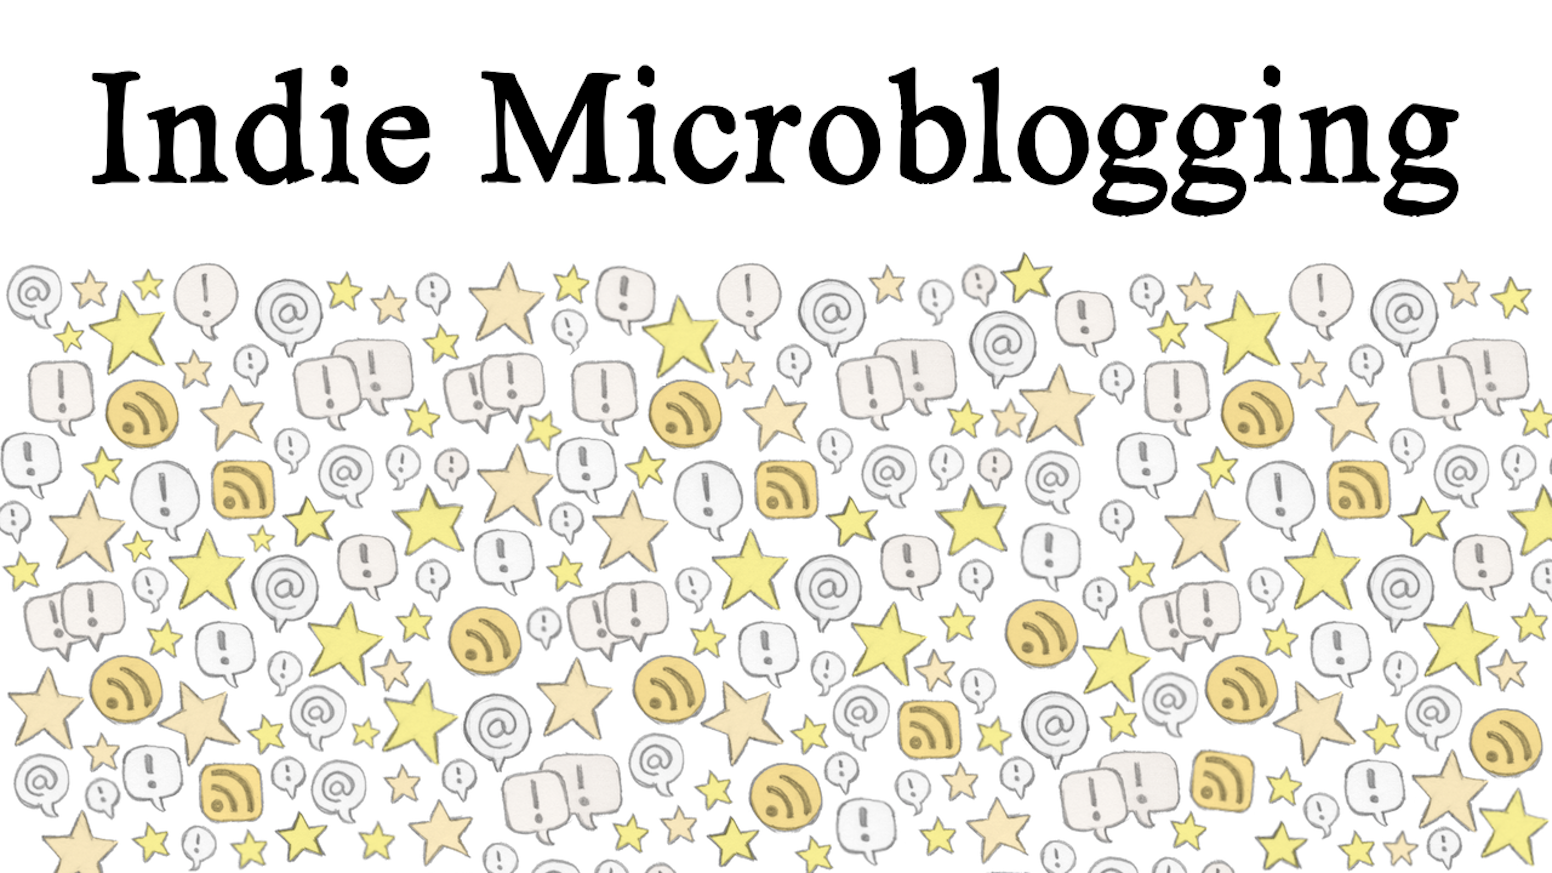 I'm writing a book about independent microblogging, and launching a publishing platform called Micro.blog.